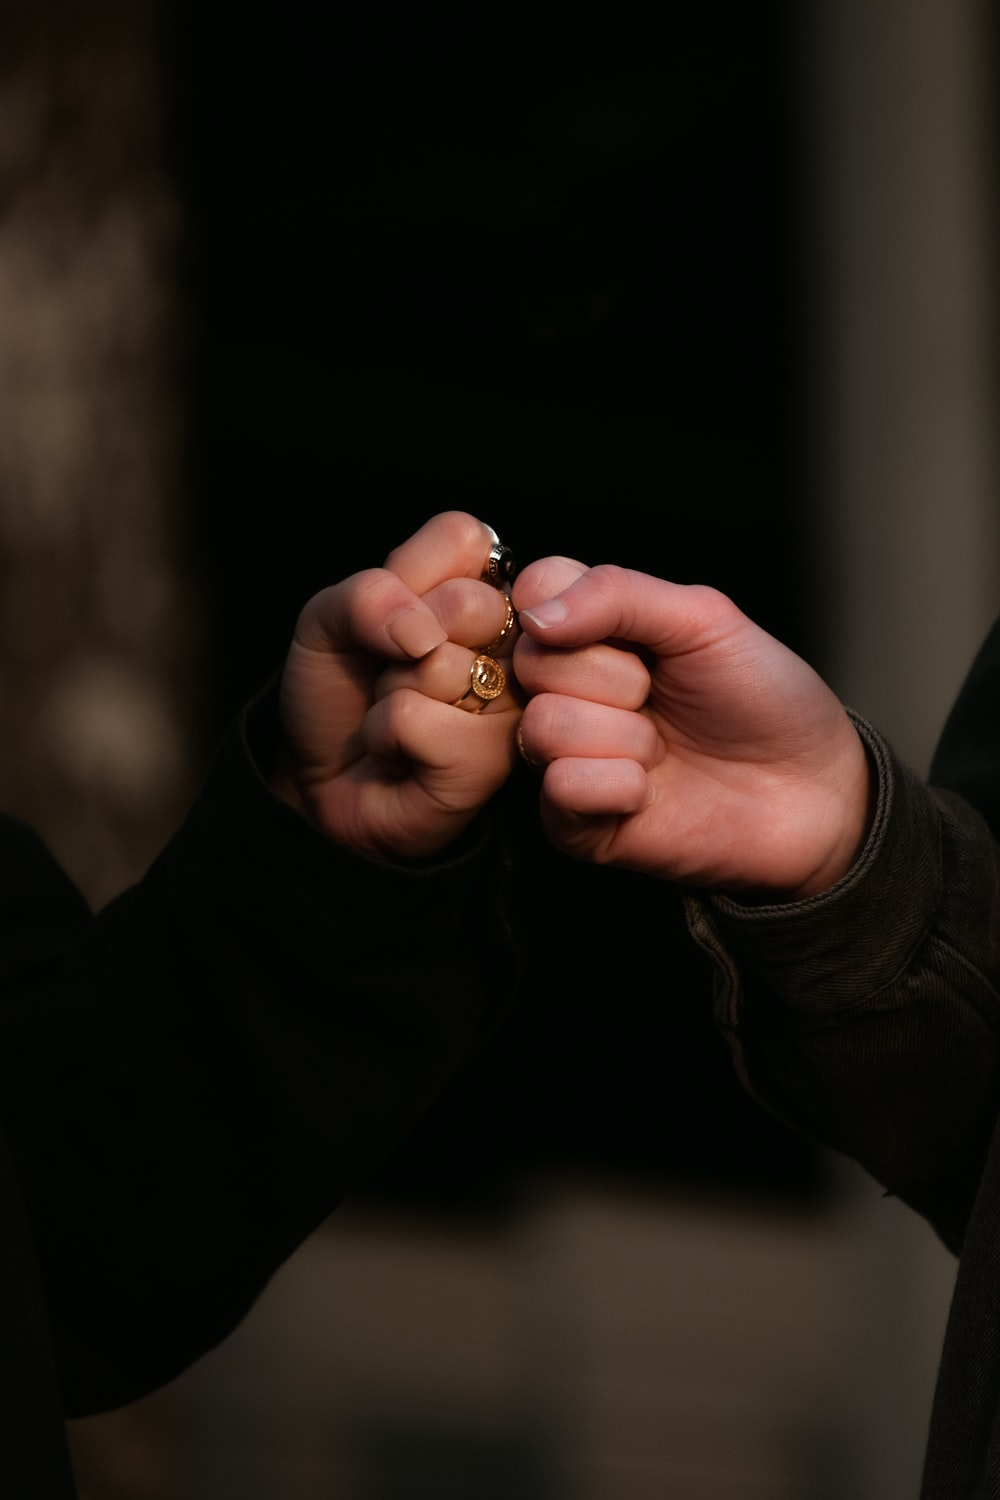 person holding gold ring in dark room